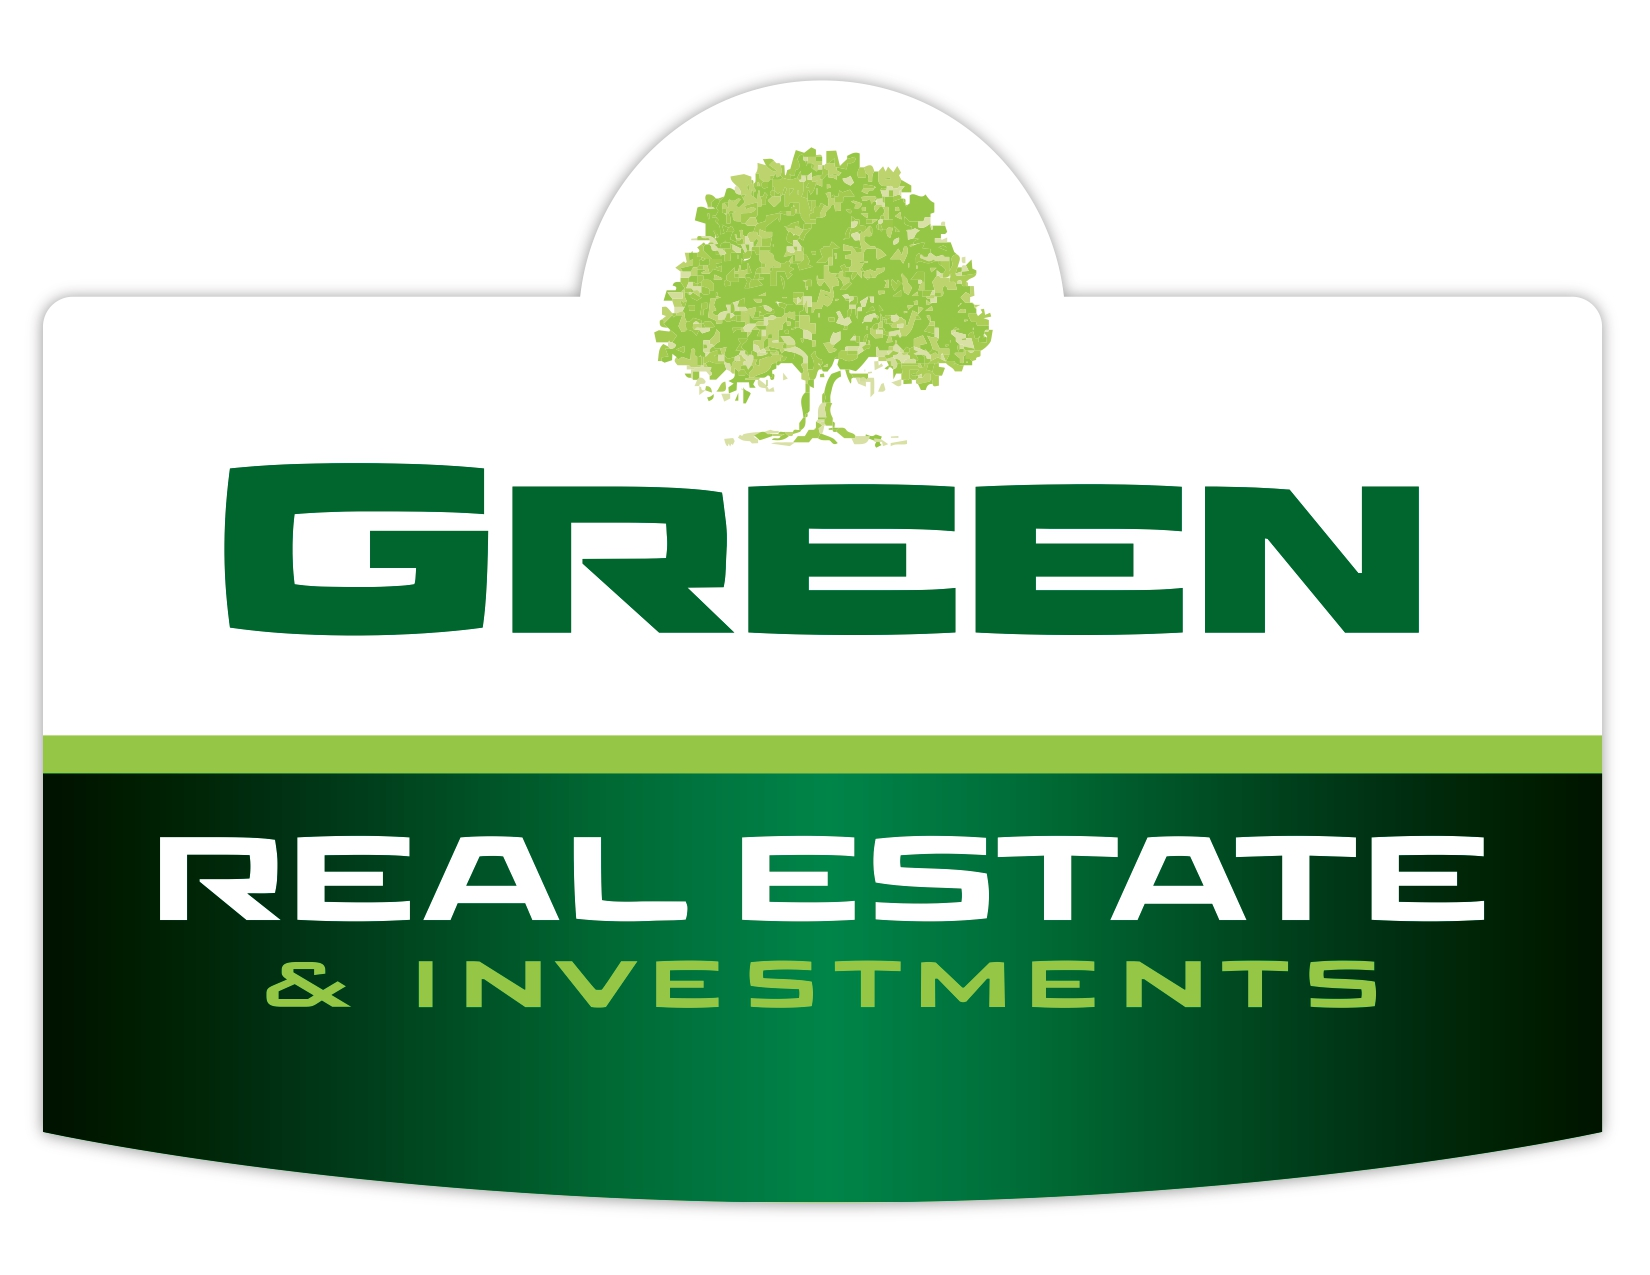 GREEN REAL ESTATE AND INVESTMENTS, LLC - HILL CITY